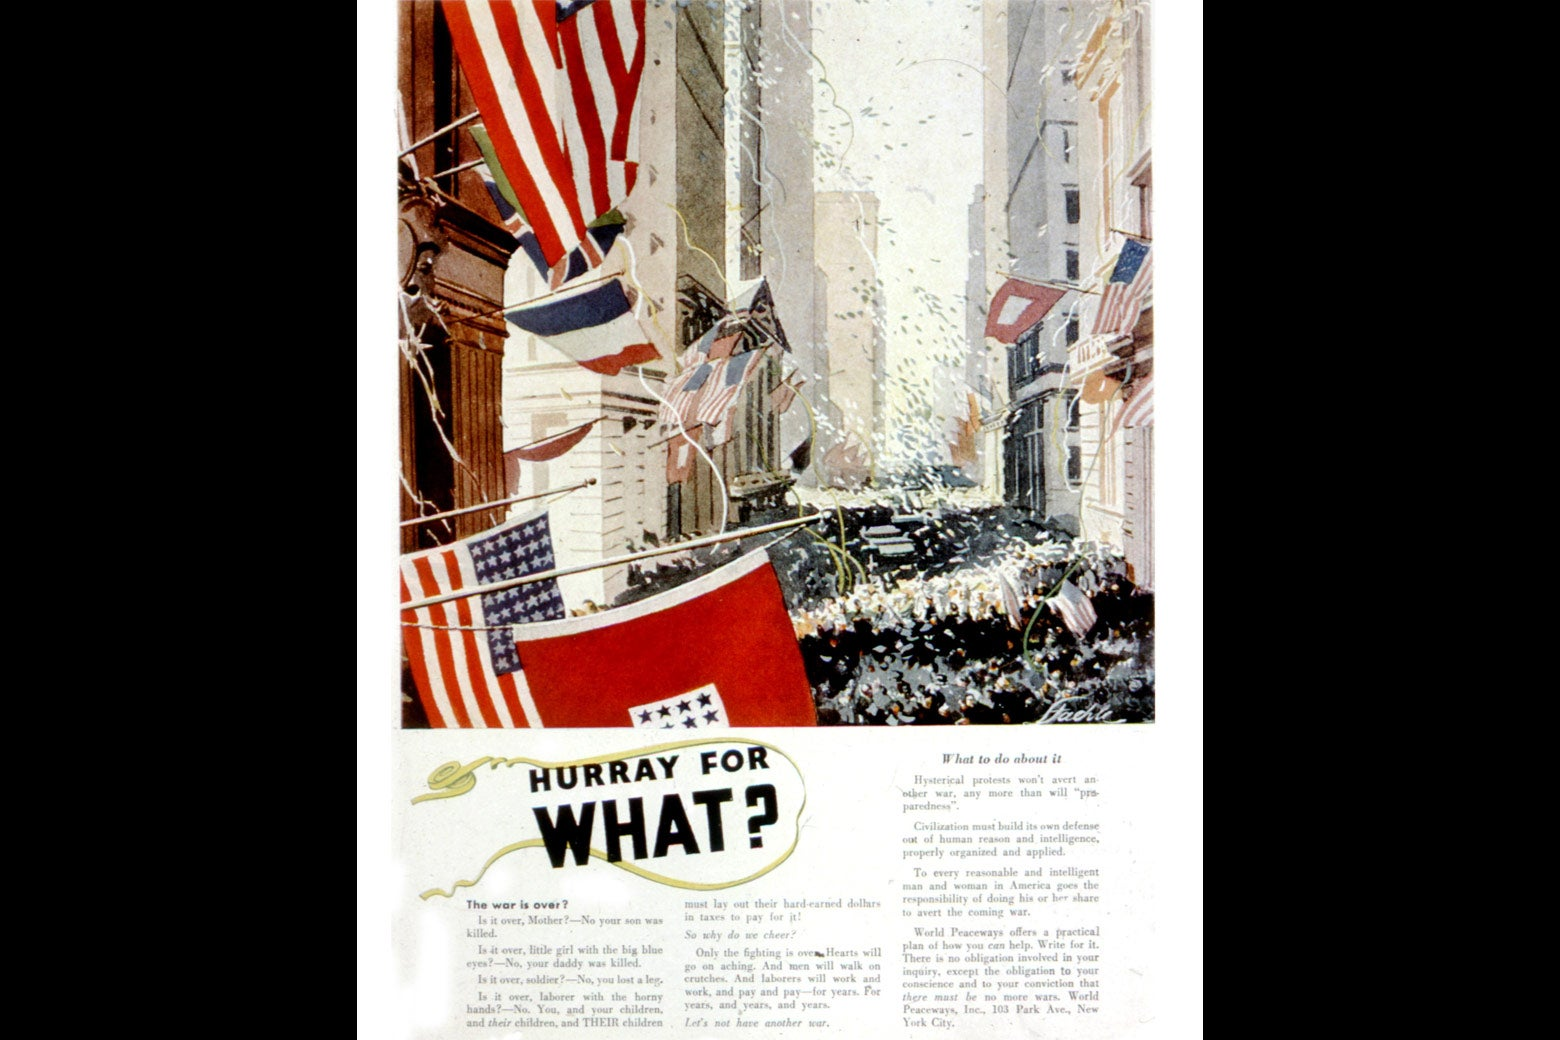 World Peaceways propaganda in an October 1935 Vanity Fair.